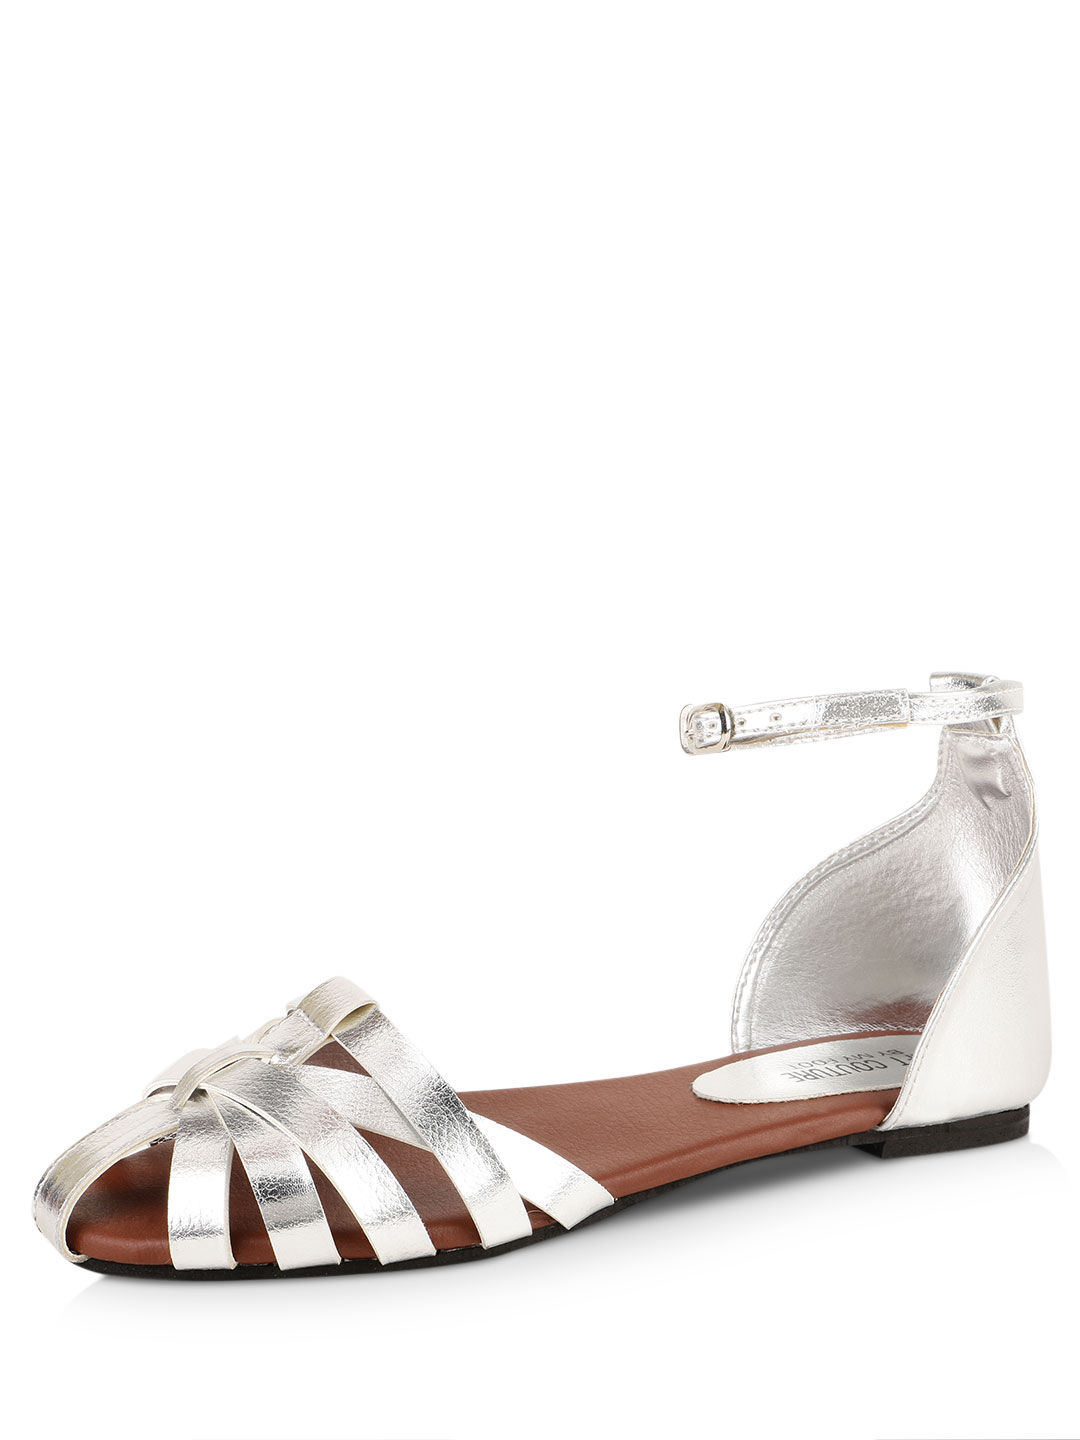 My Foot Couture Silver Metallic Strappy Sandals 1